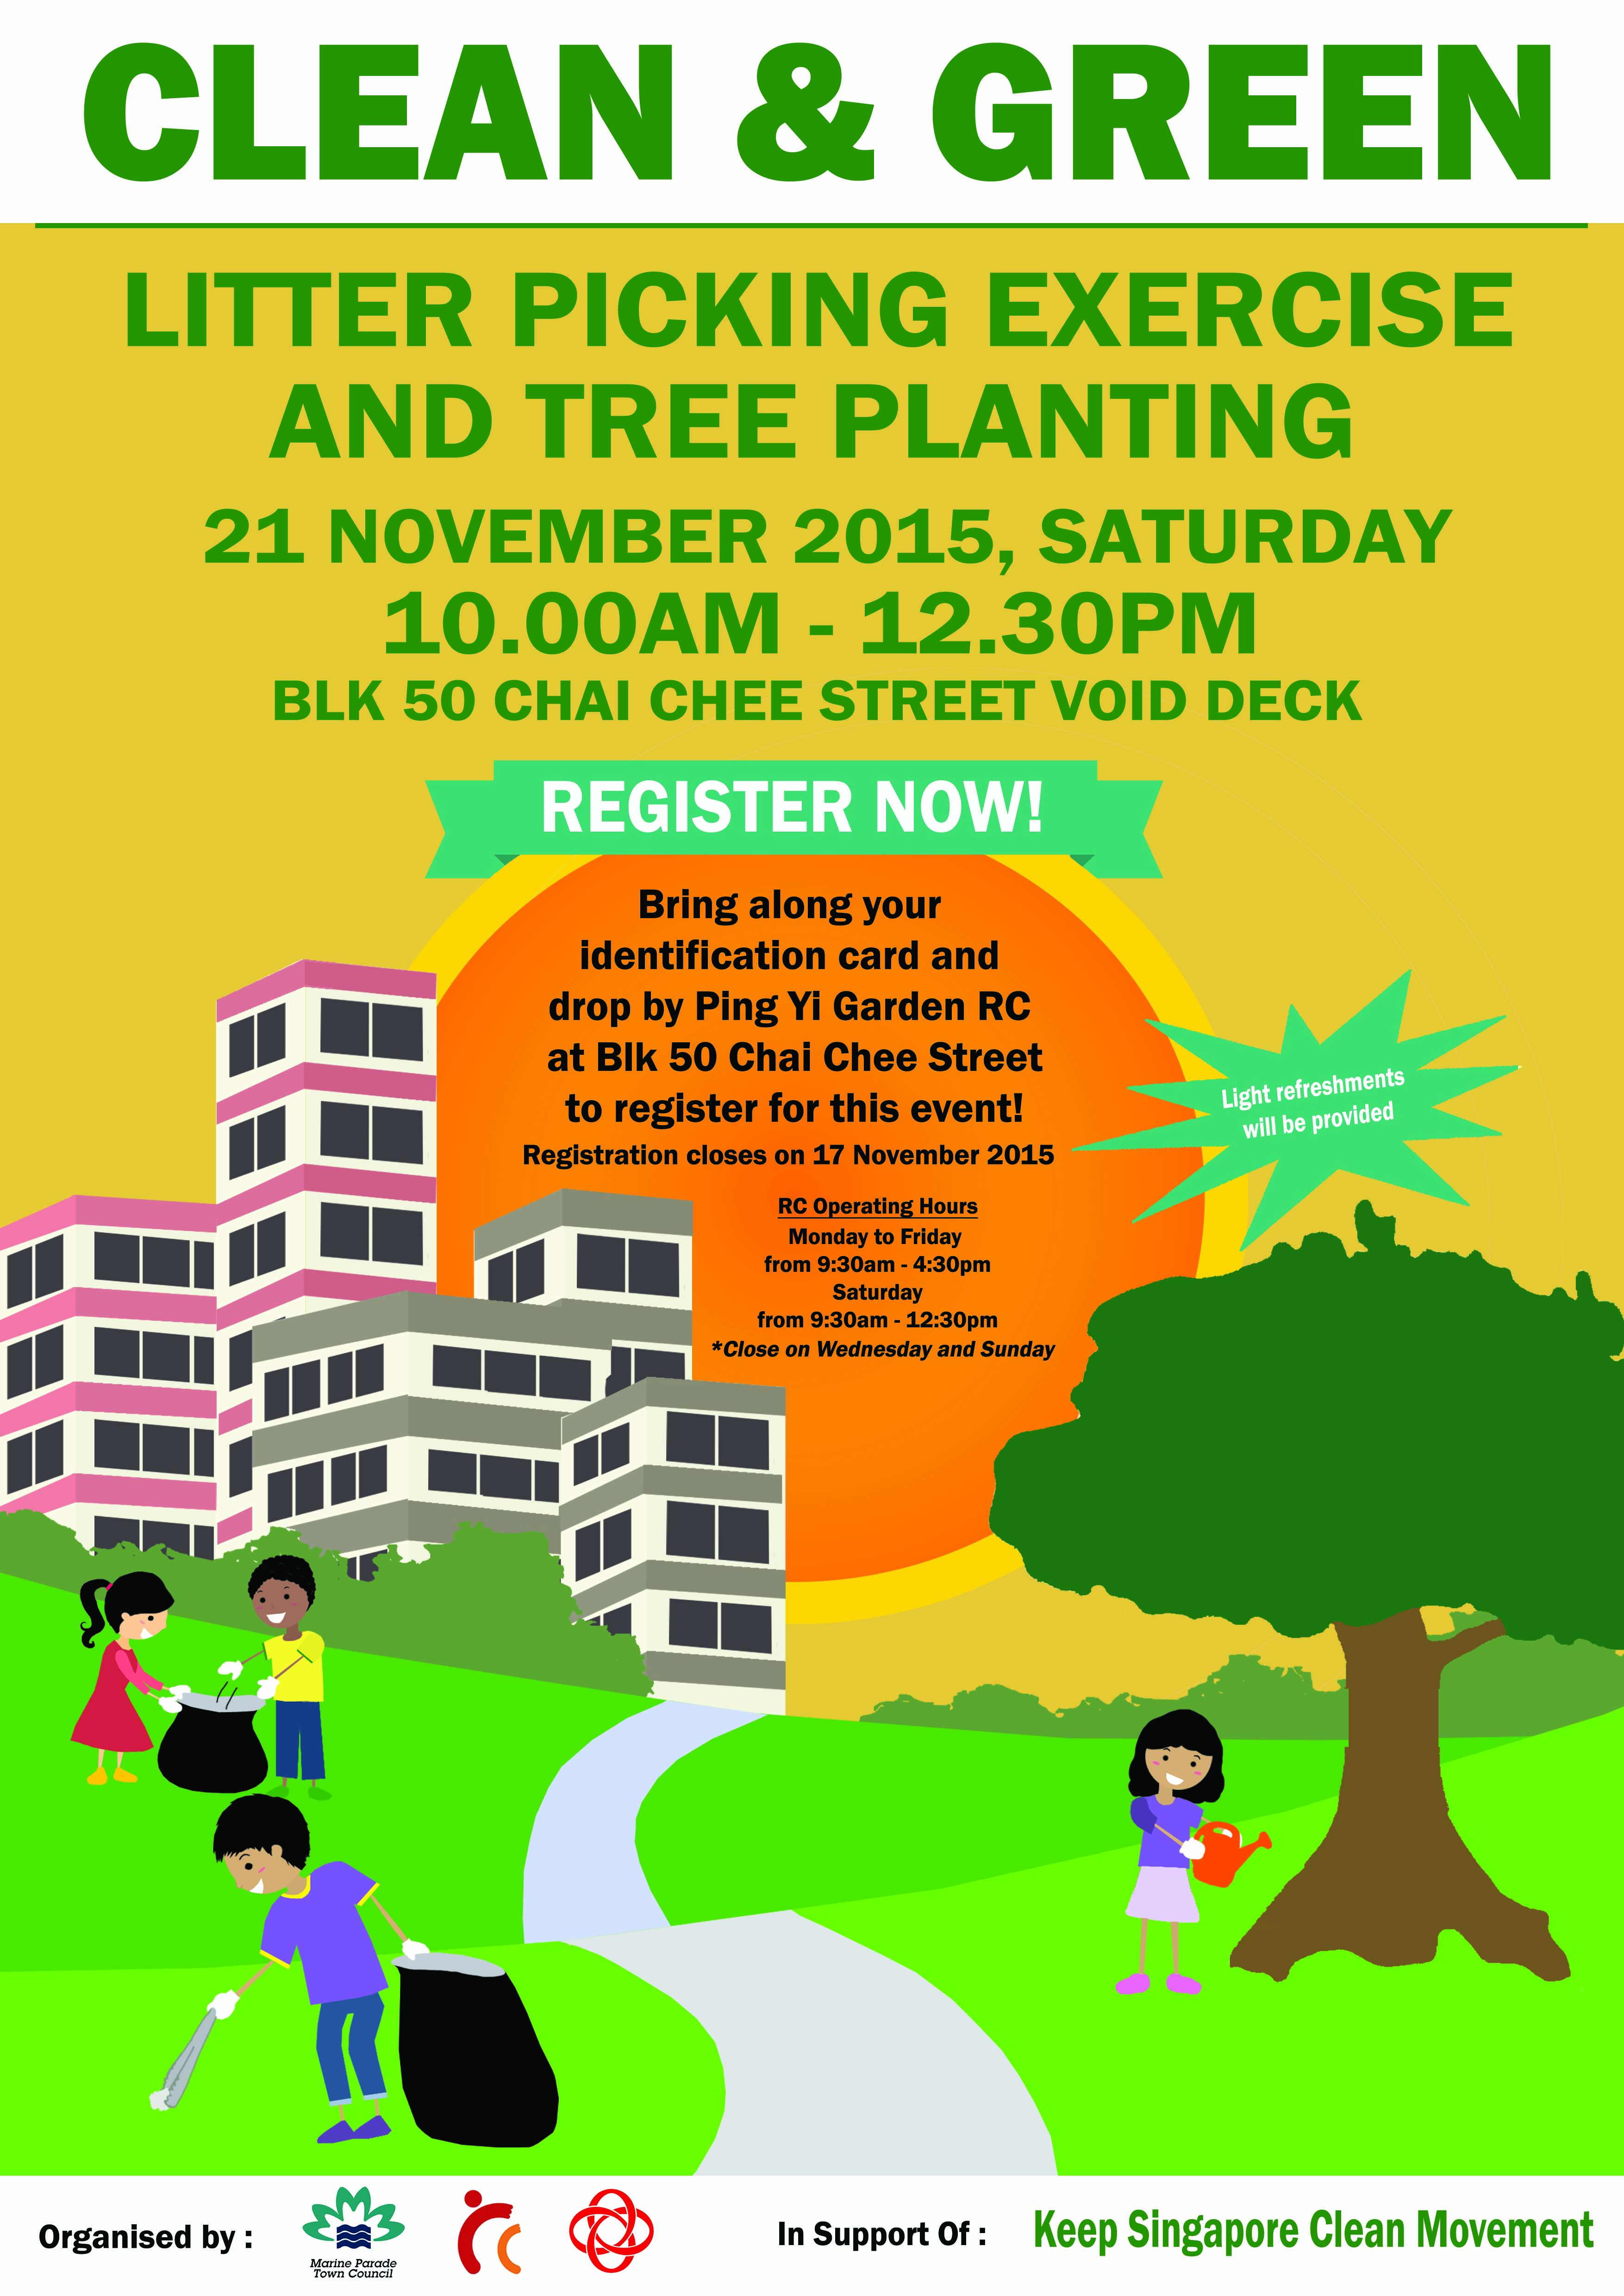 Clean & Green Litter Picking Exercise and Tree Planting